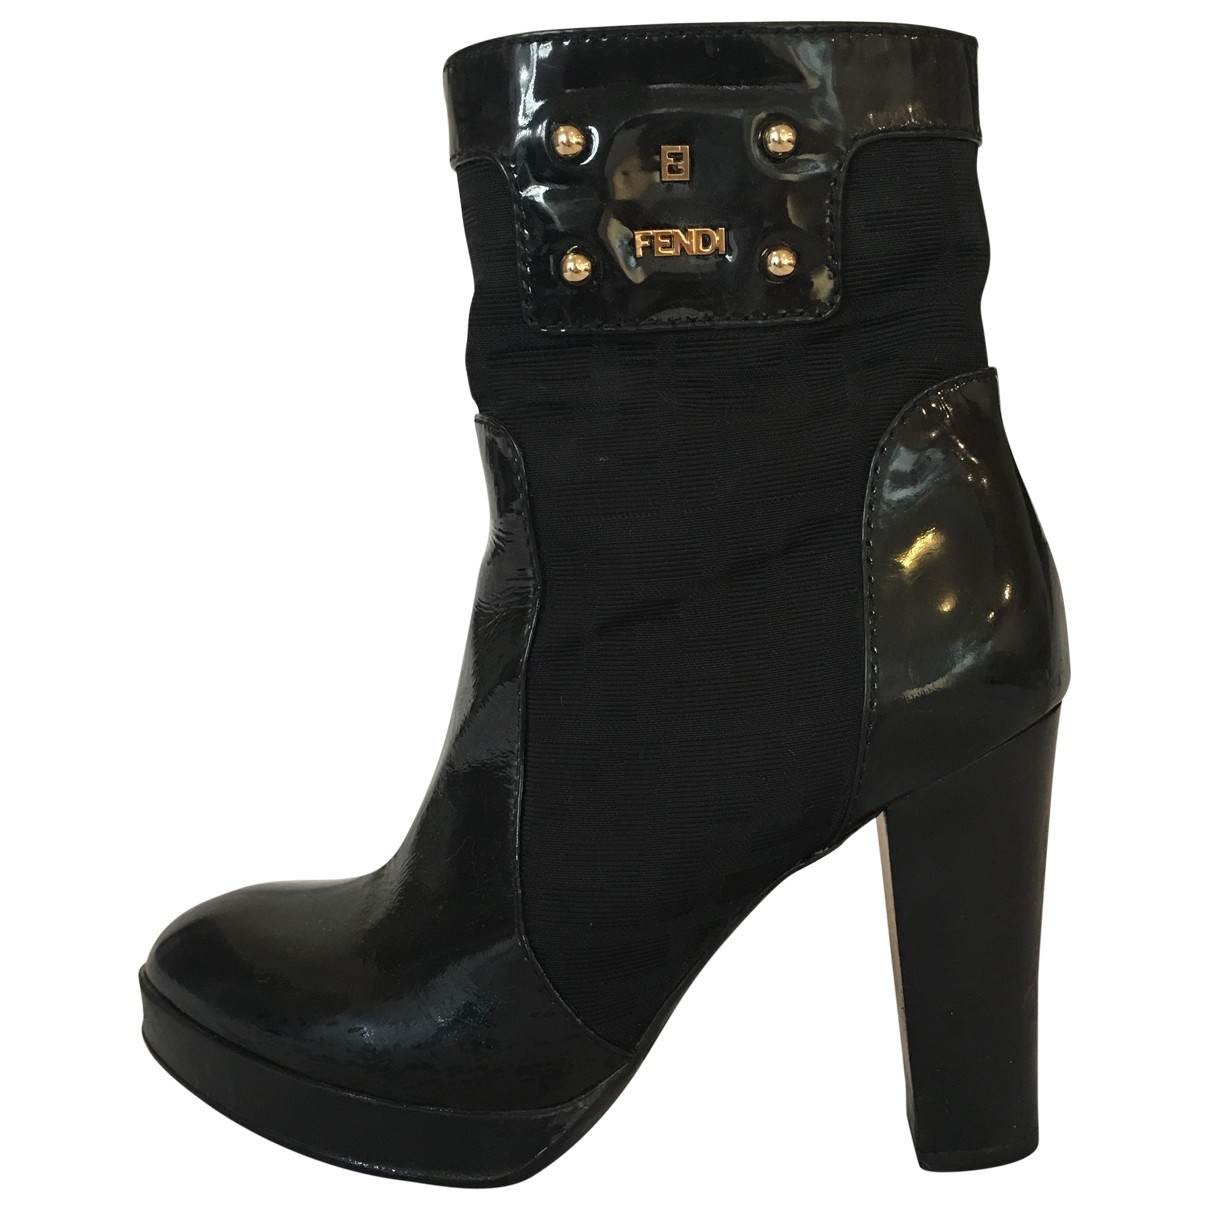 Fendi \N Black Patent leather Ankle boots for Women 38.5 EU